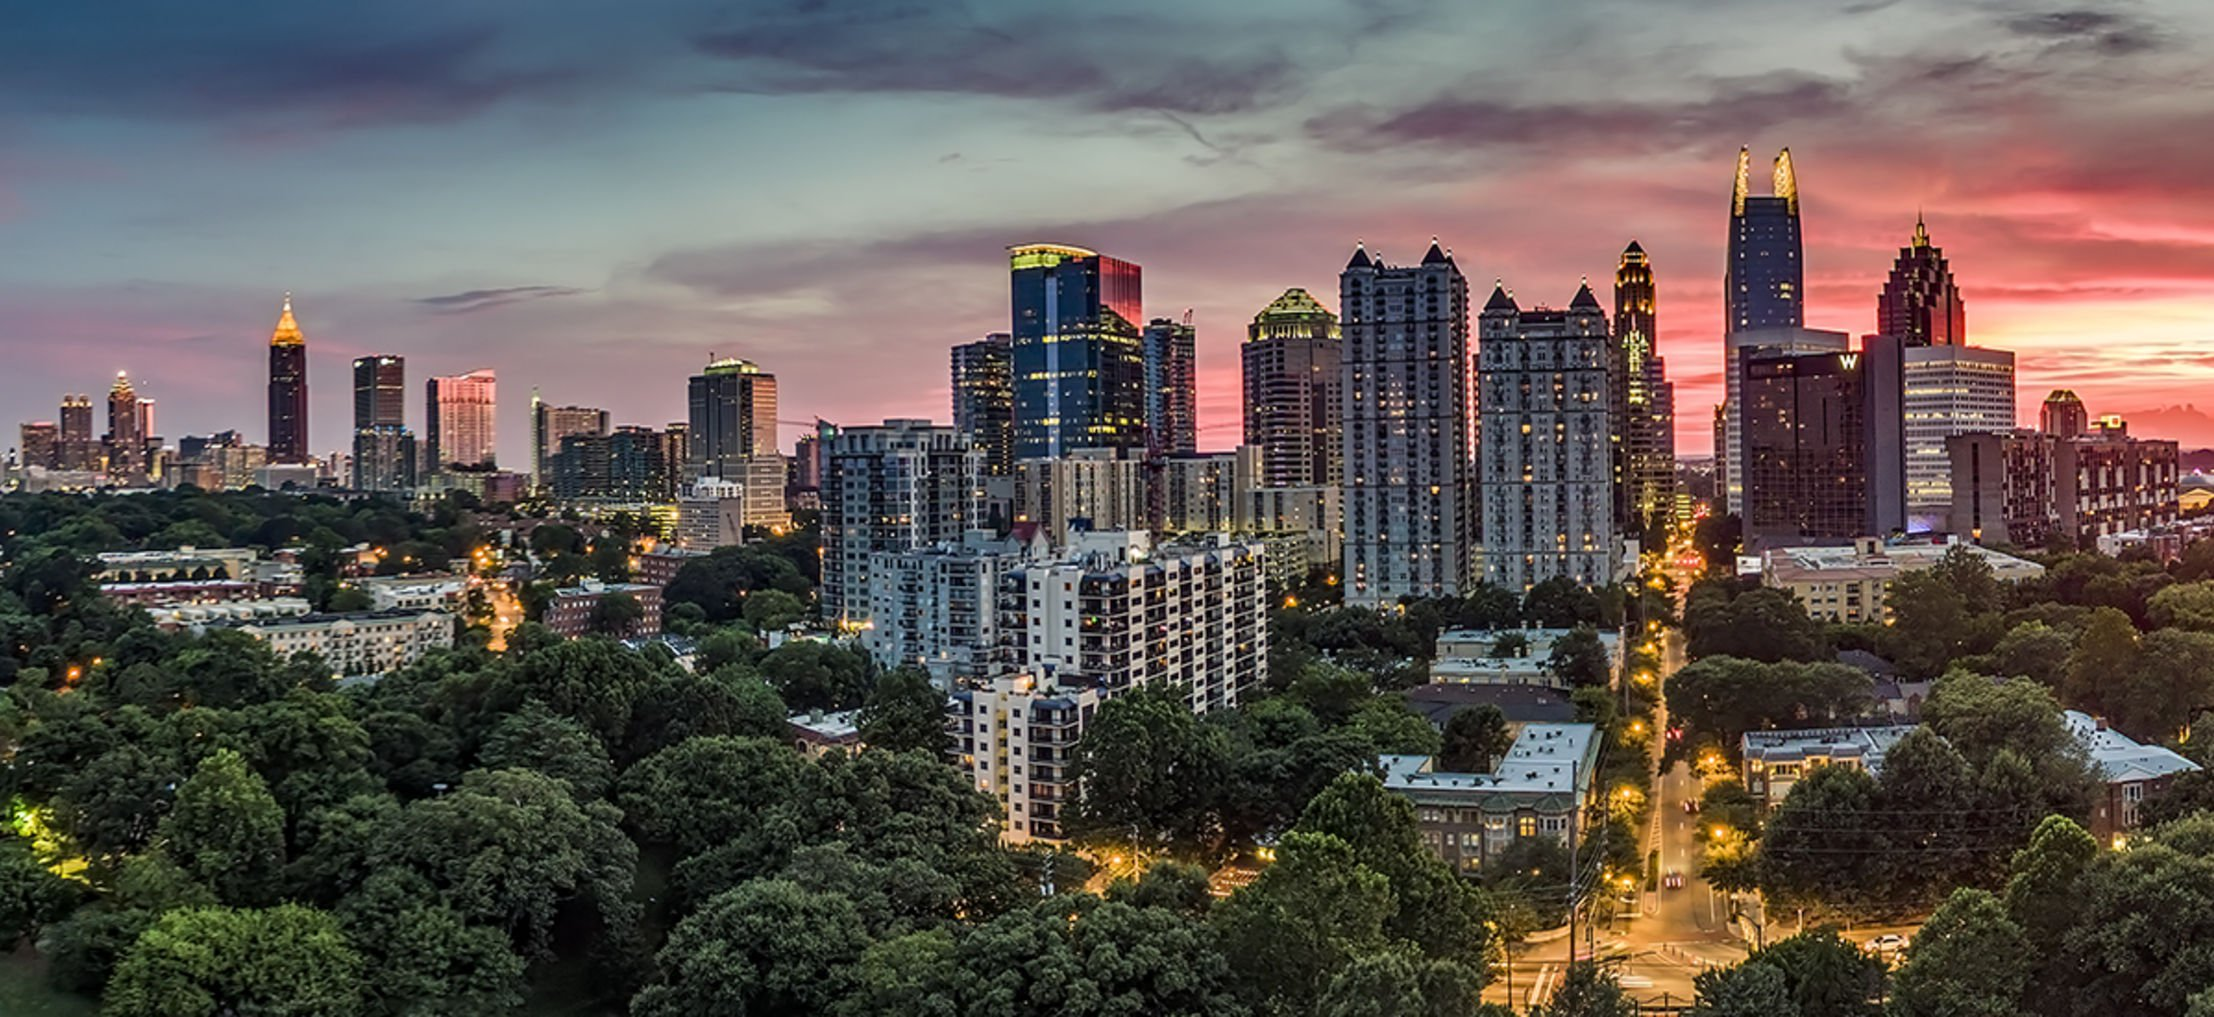 Atlanta widescreen wallpapers